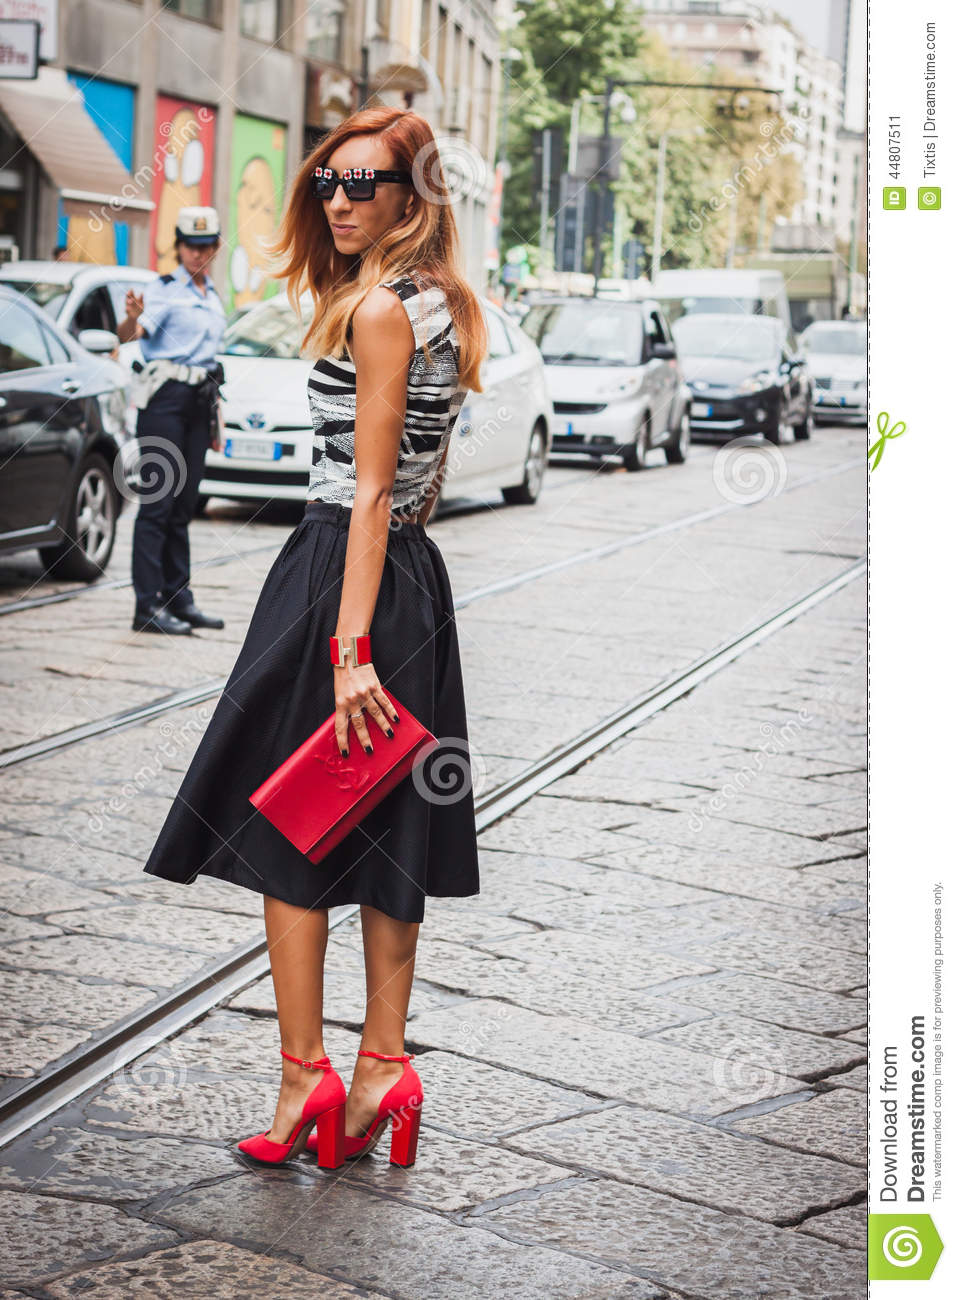 Woman Posing Outside Byblos Fashion Shows Building For